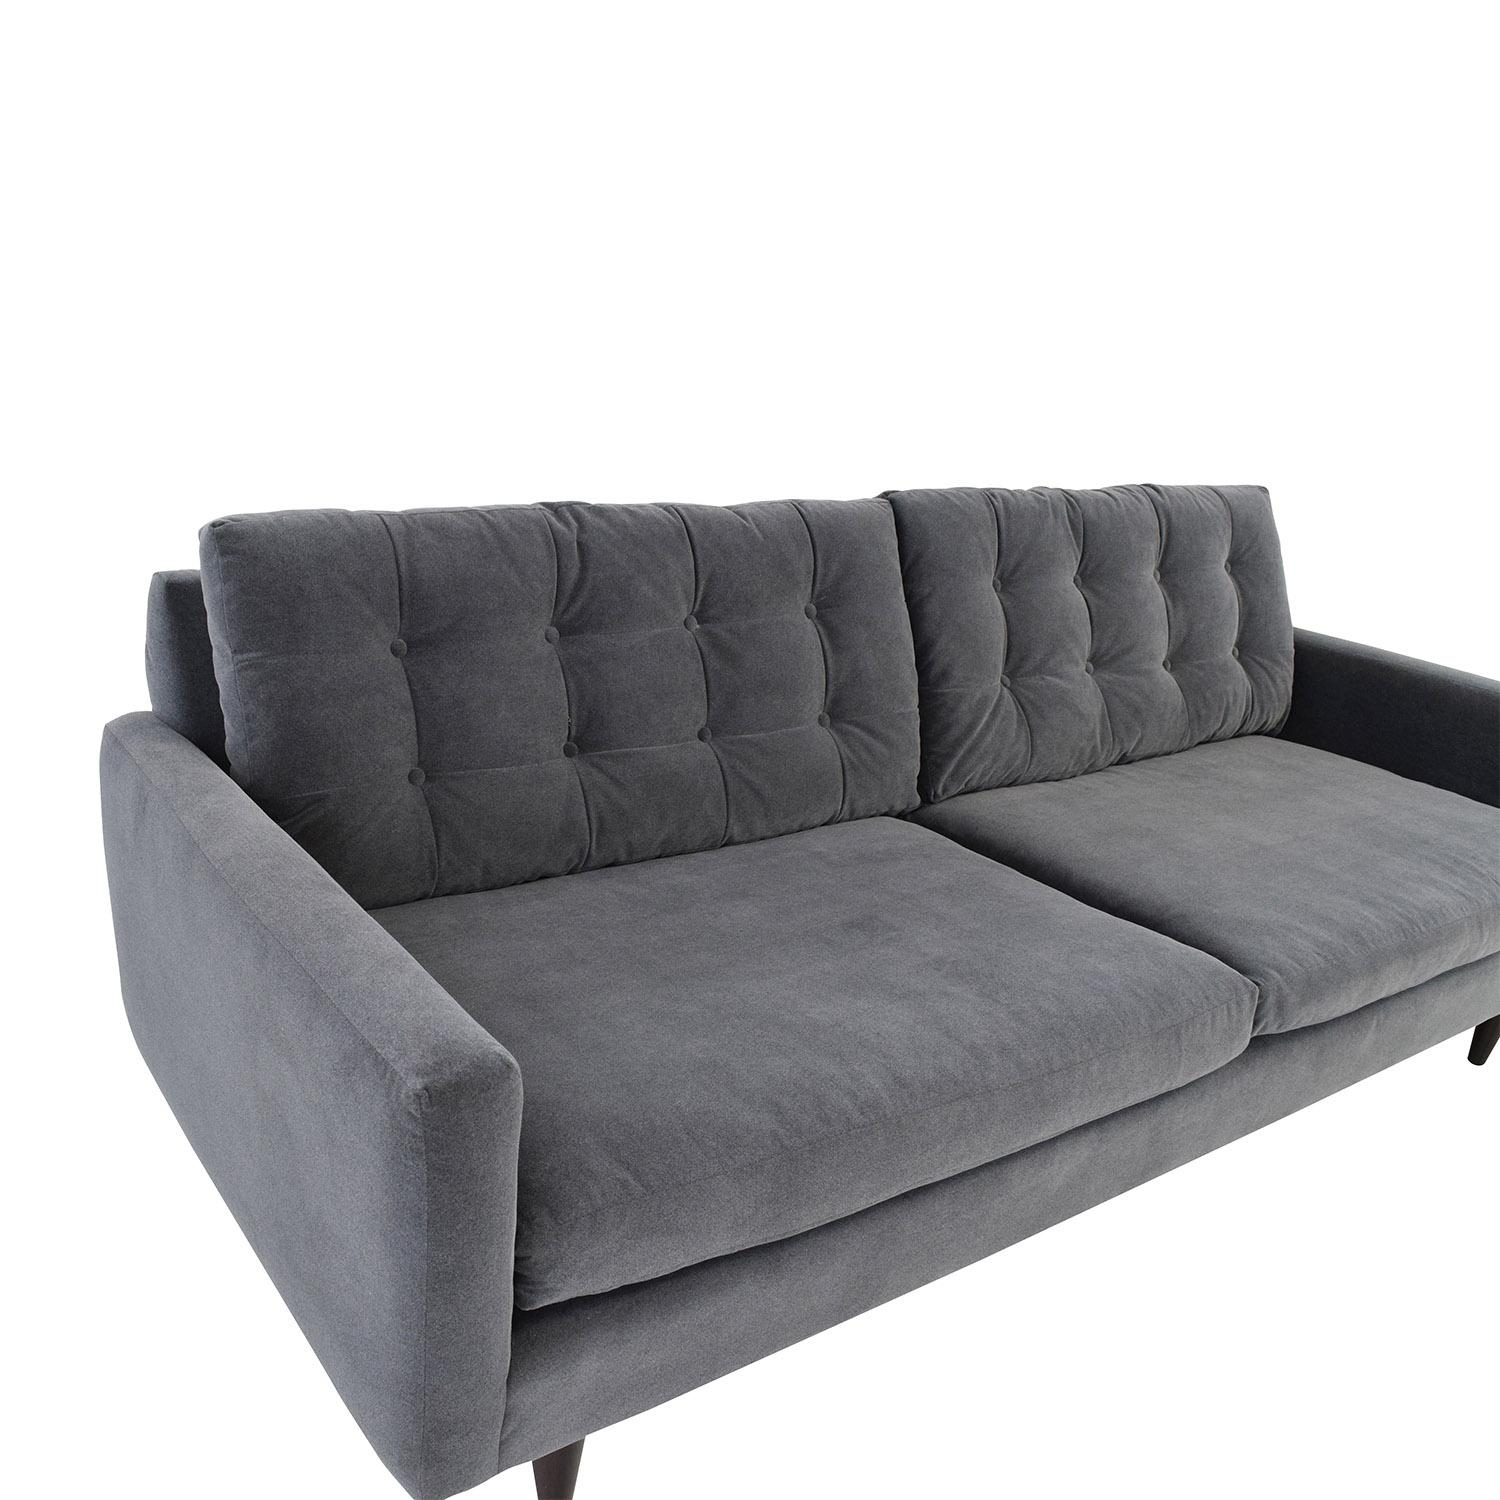 62% Off – Crate And Barrel Crate & Barrel Petrie Mid Century Grey Pertaining To Crate And Barrel Futon Sofas (View 6 of 20)